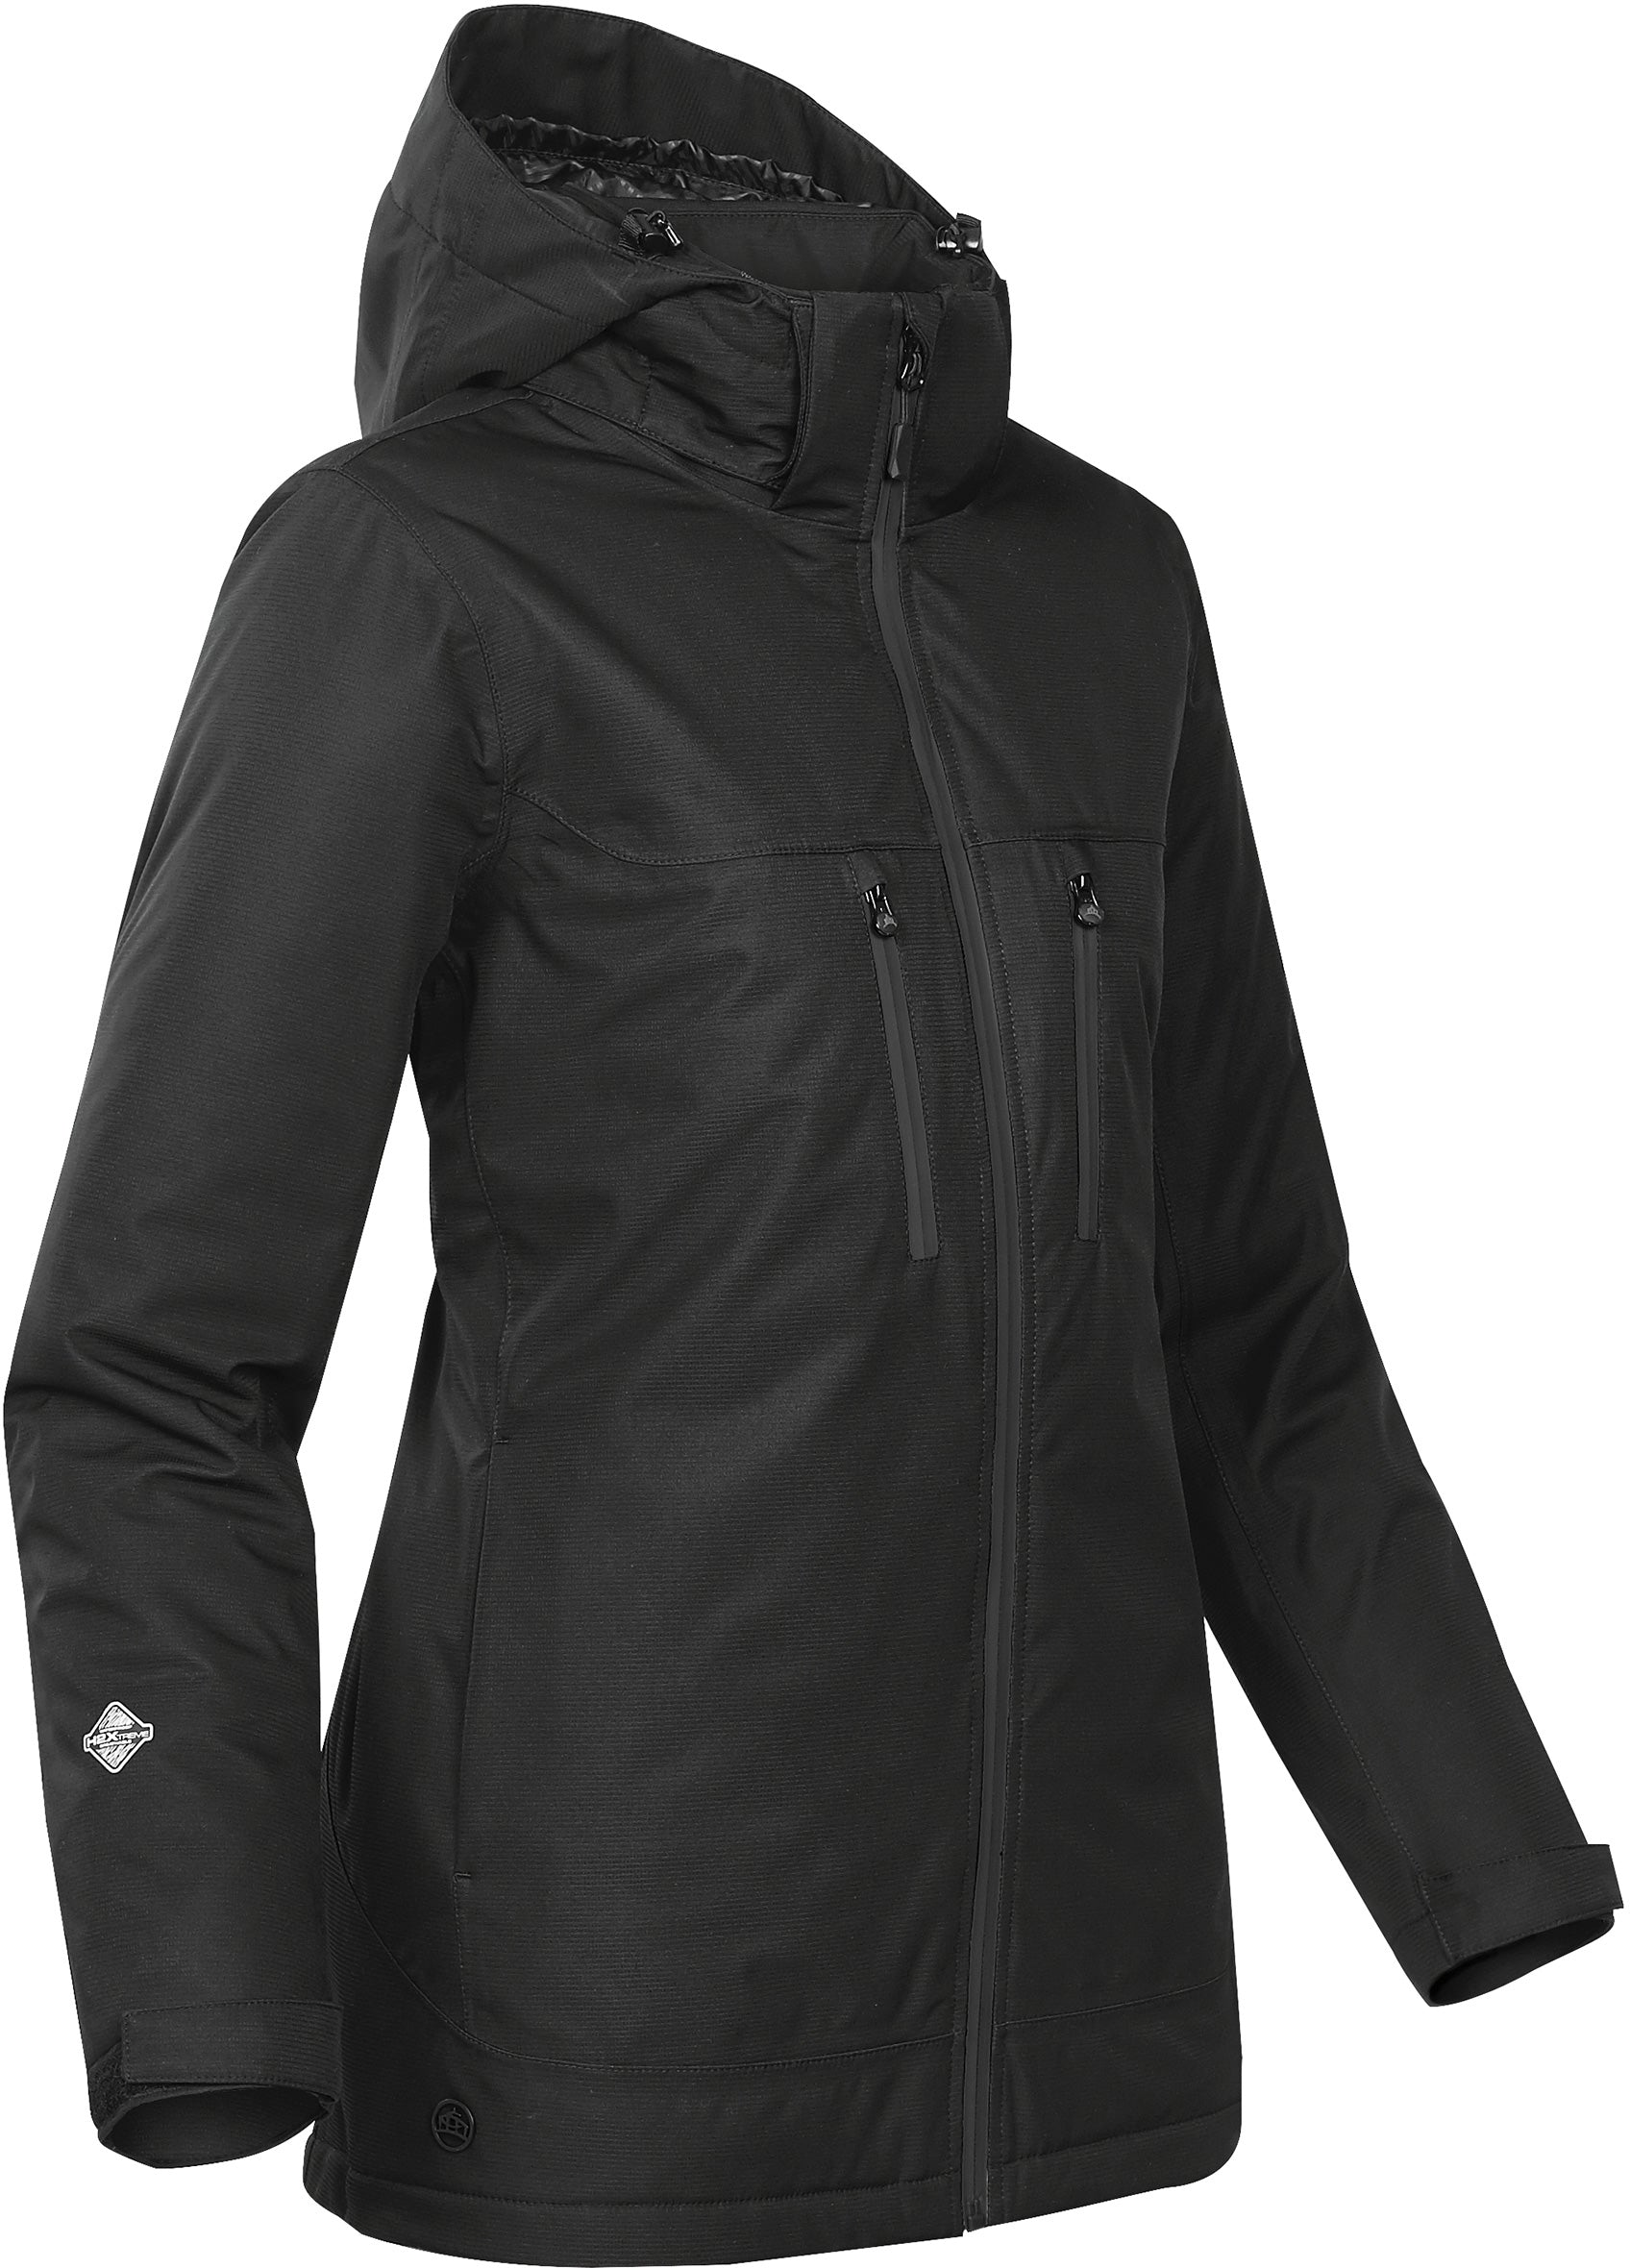 STORMTECH LADIES SNOWBURST THERMAL SHELL JACKET